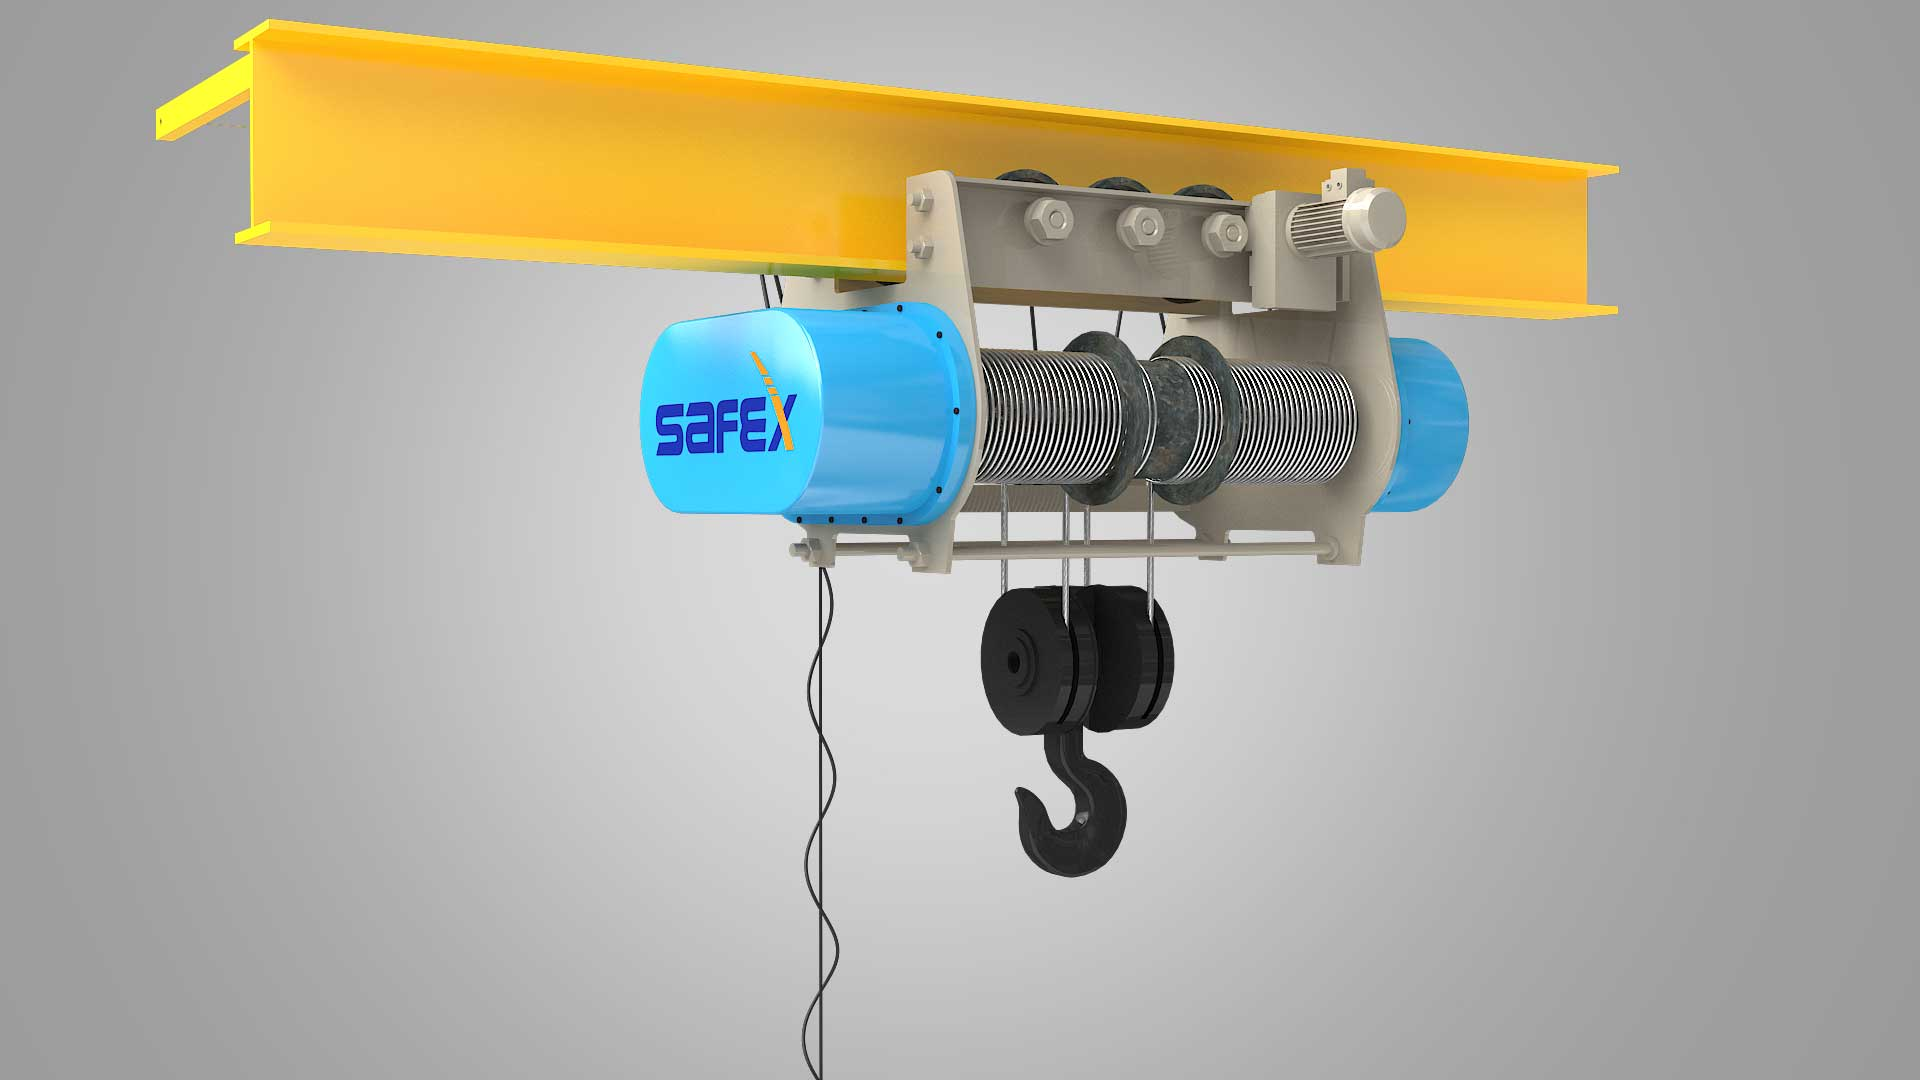 We are the Prominent Manufacturer, Supplier and Exporter of ELECTRIC HOIST in Saudi Arabia